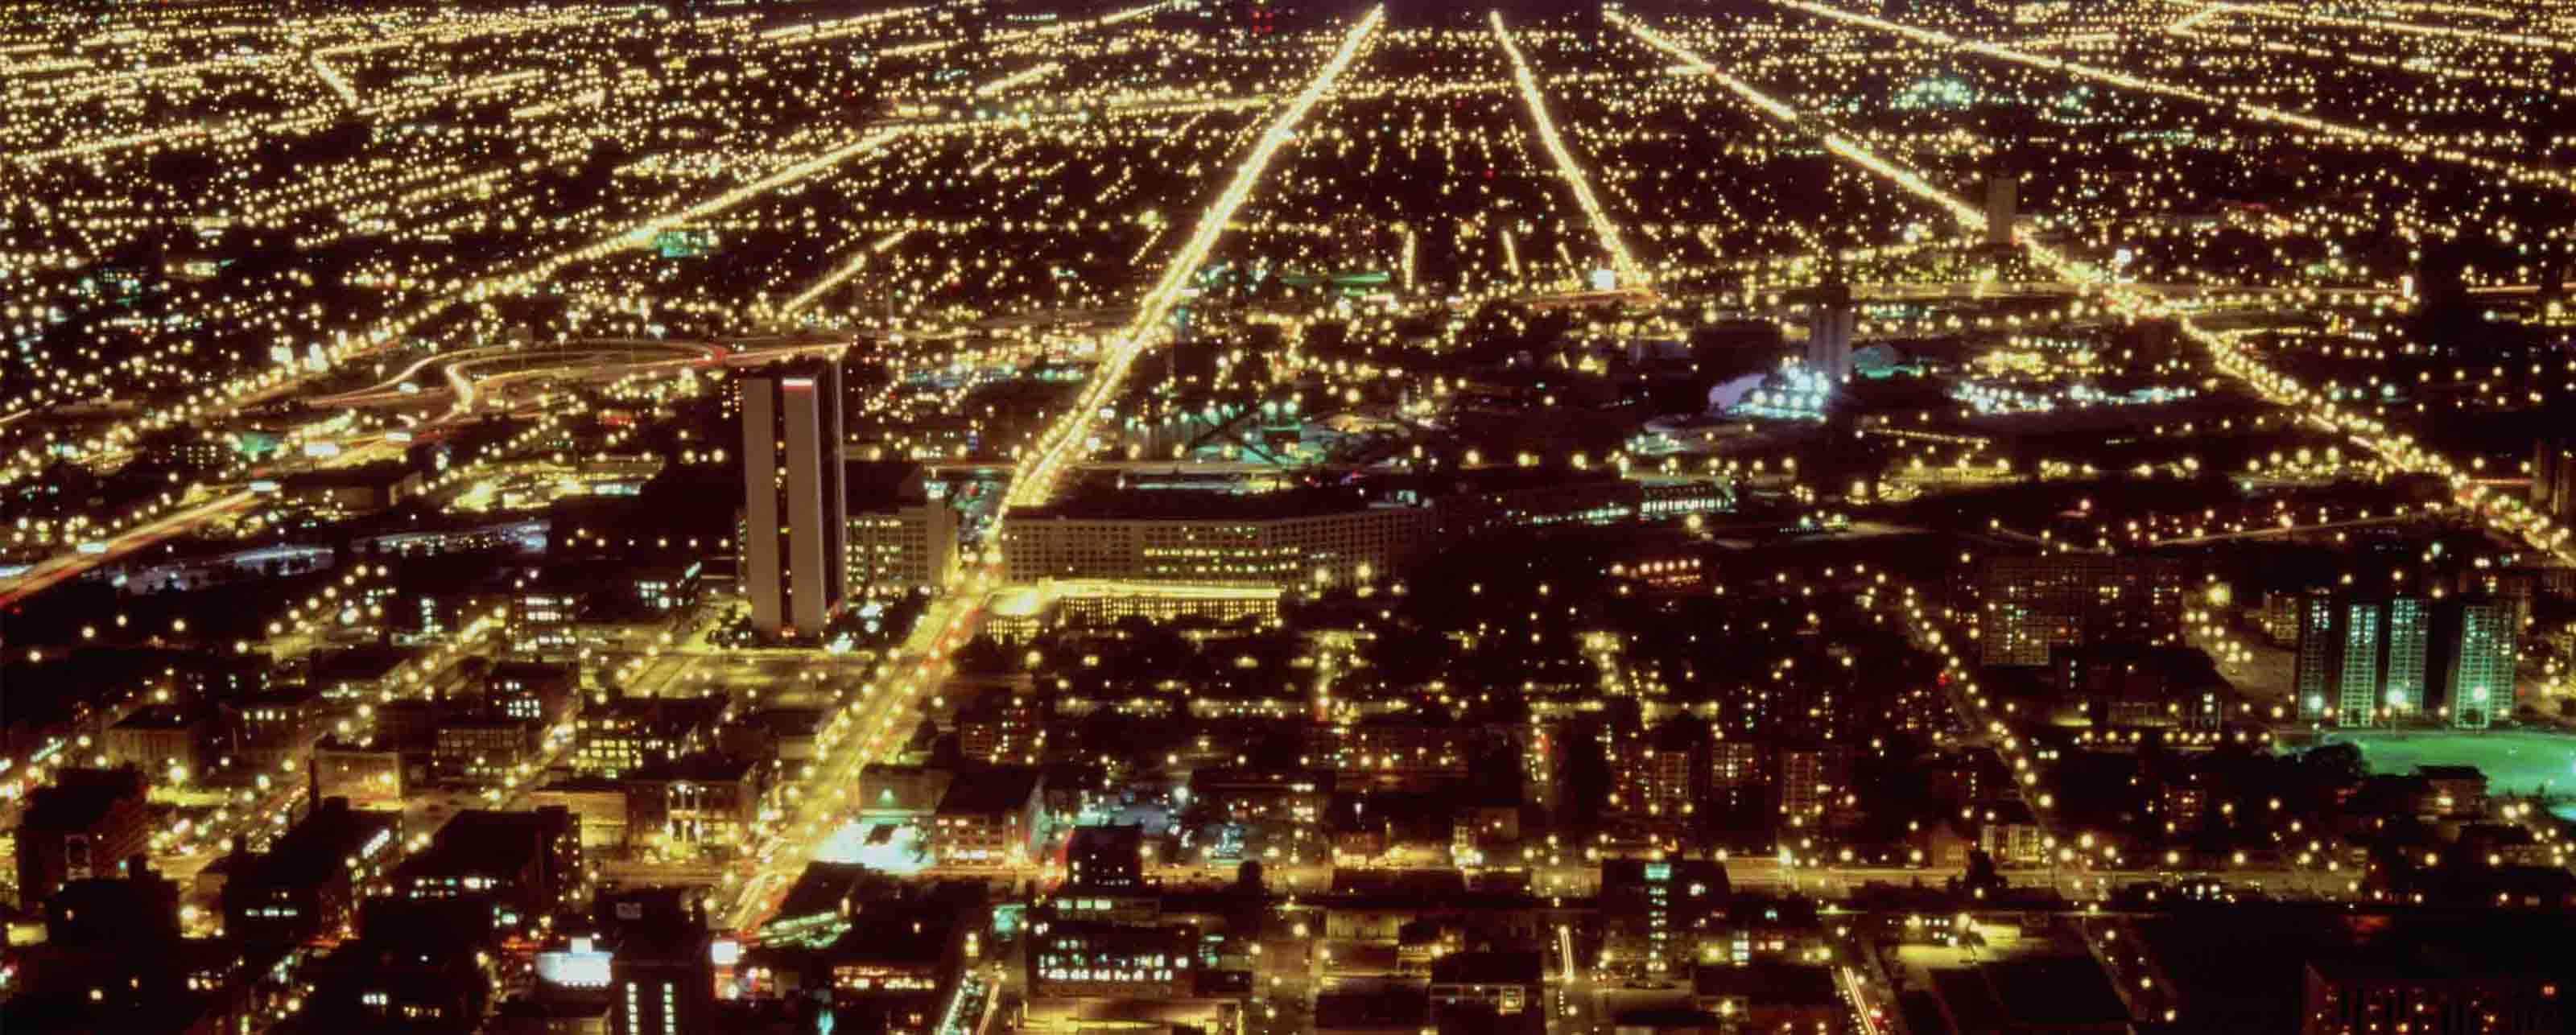 City lights illuminated with the help of GE Digital grid modernization software for utilities